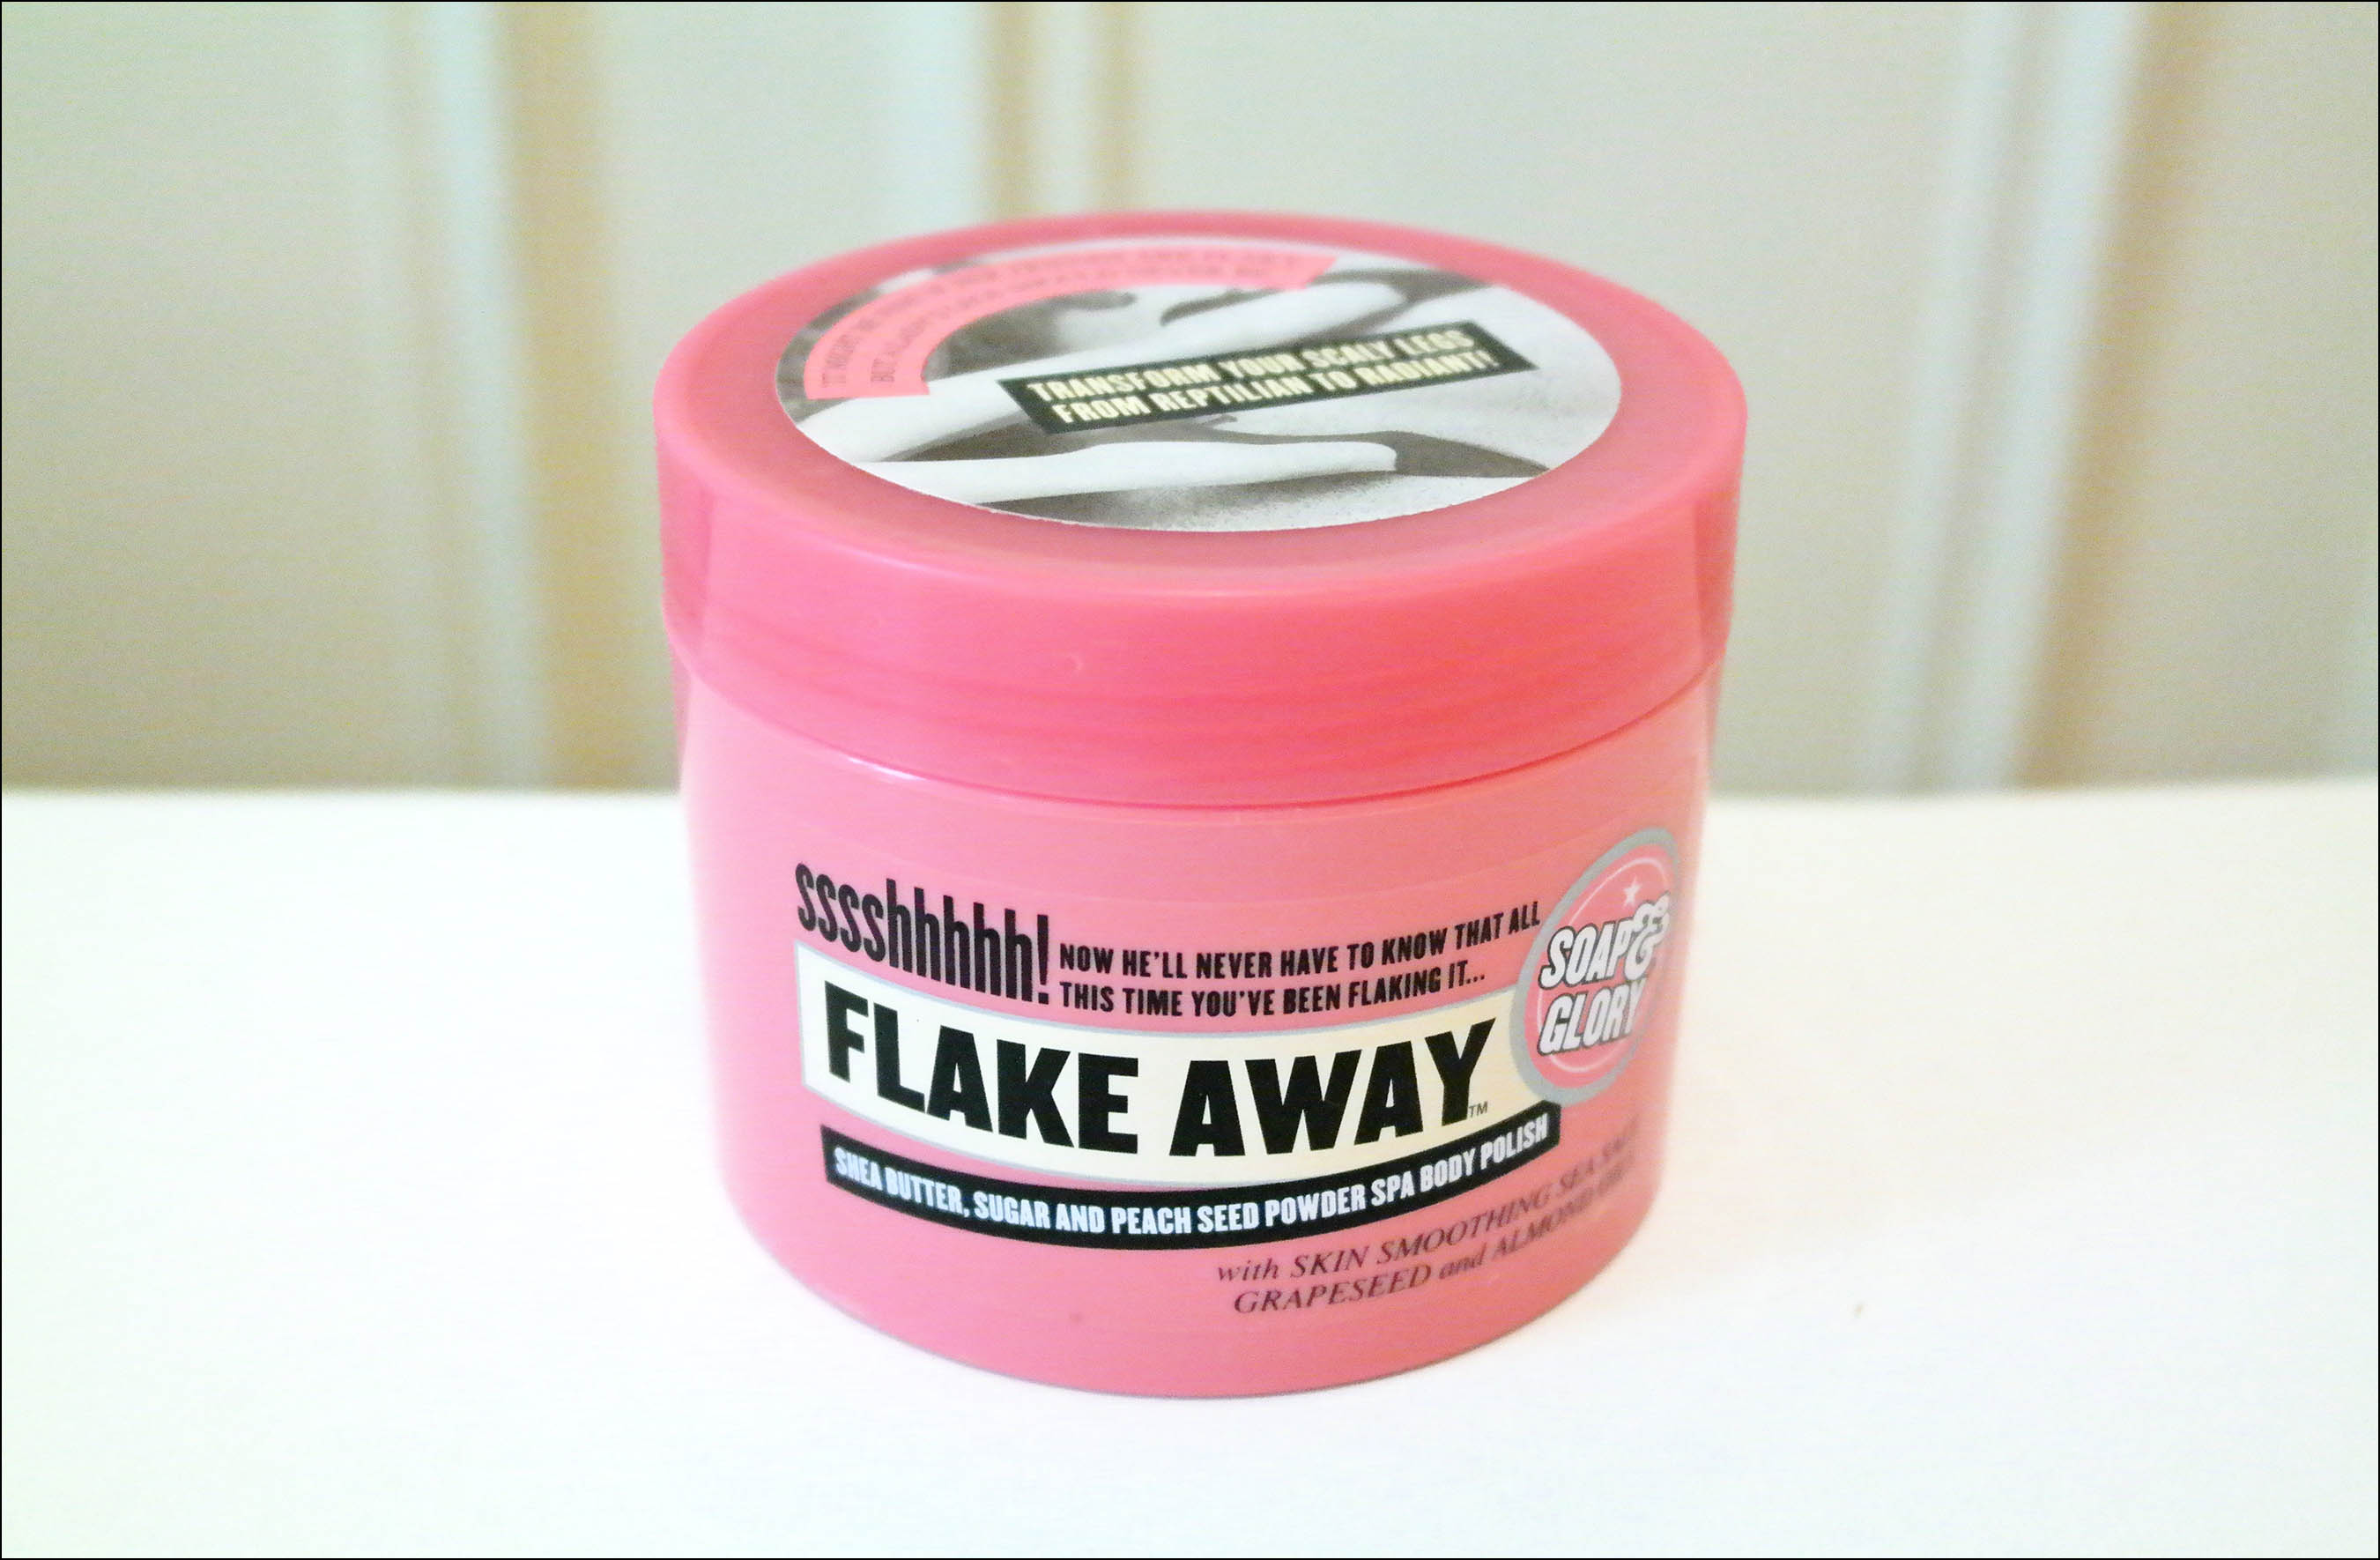 gommage, gommages corps, soap and glory, flake away